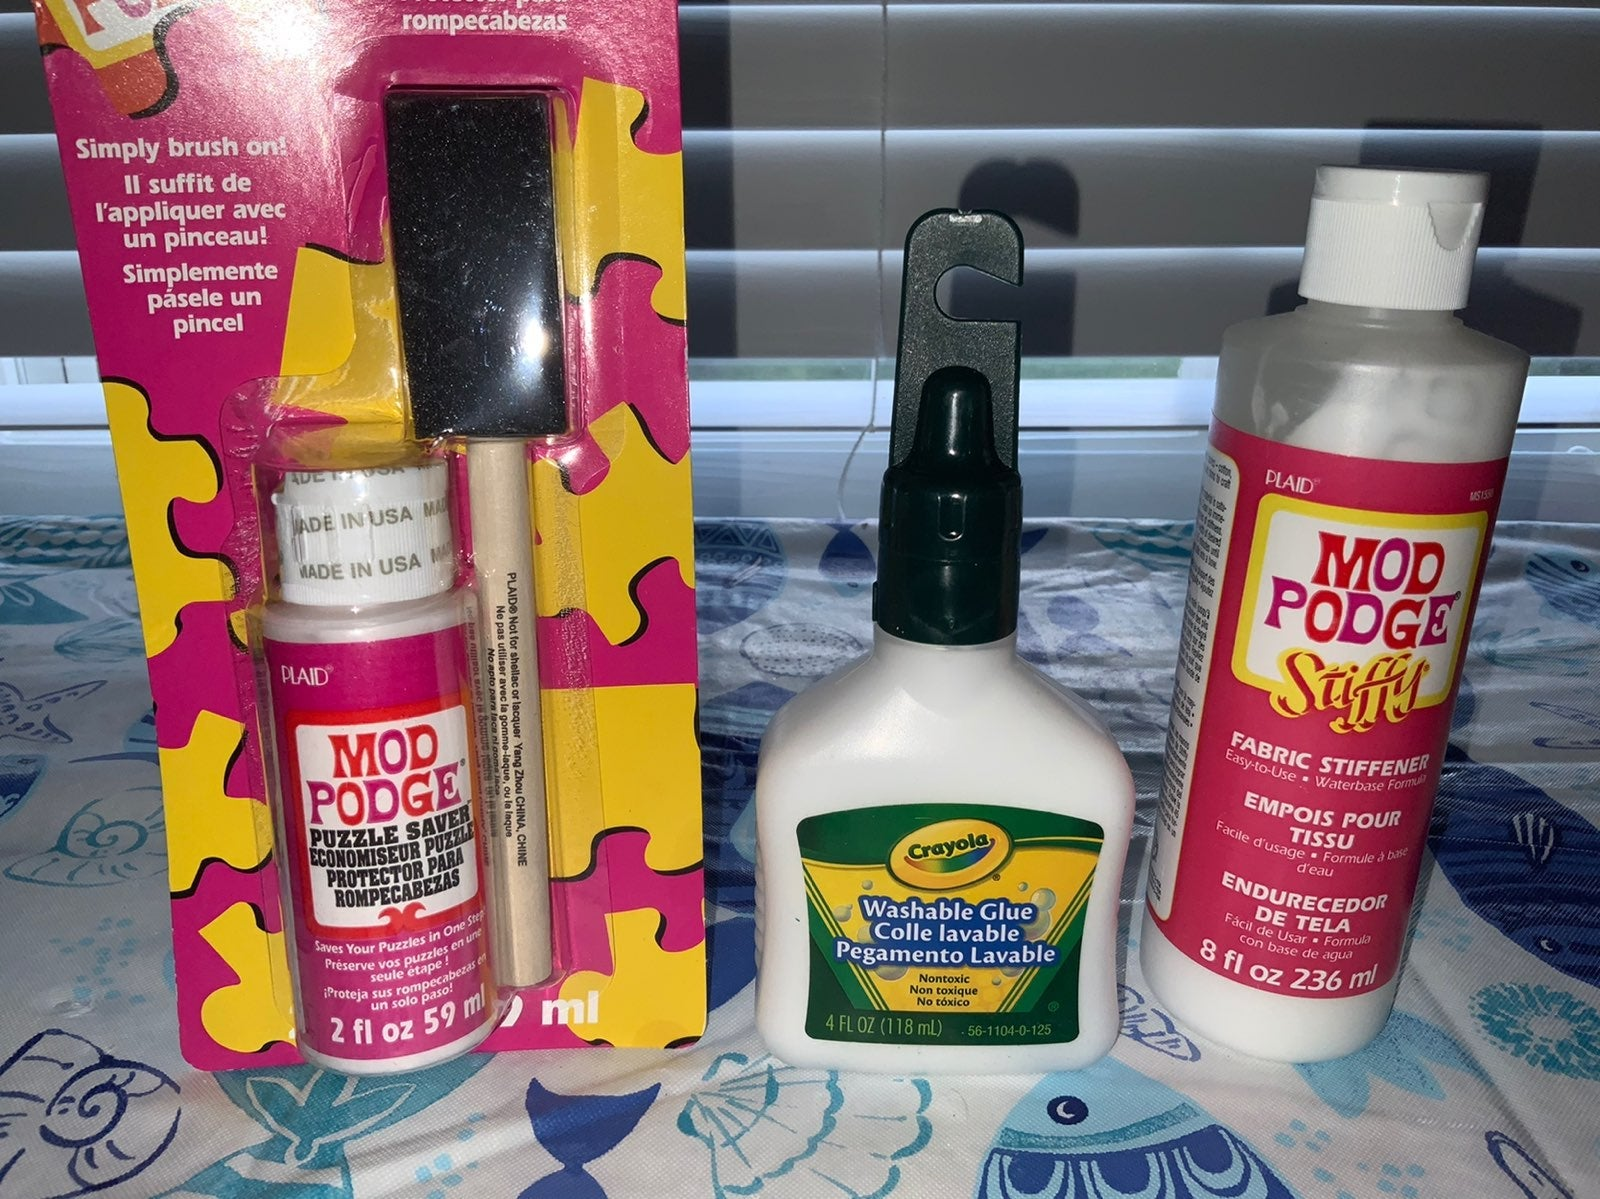 Mod podge glue bundle 3pc